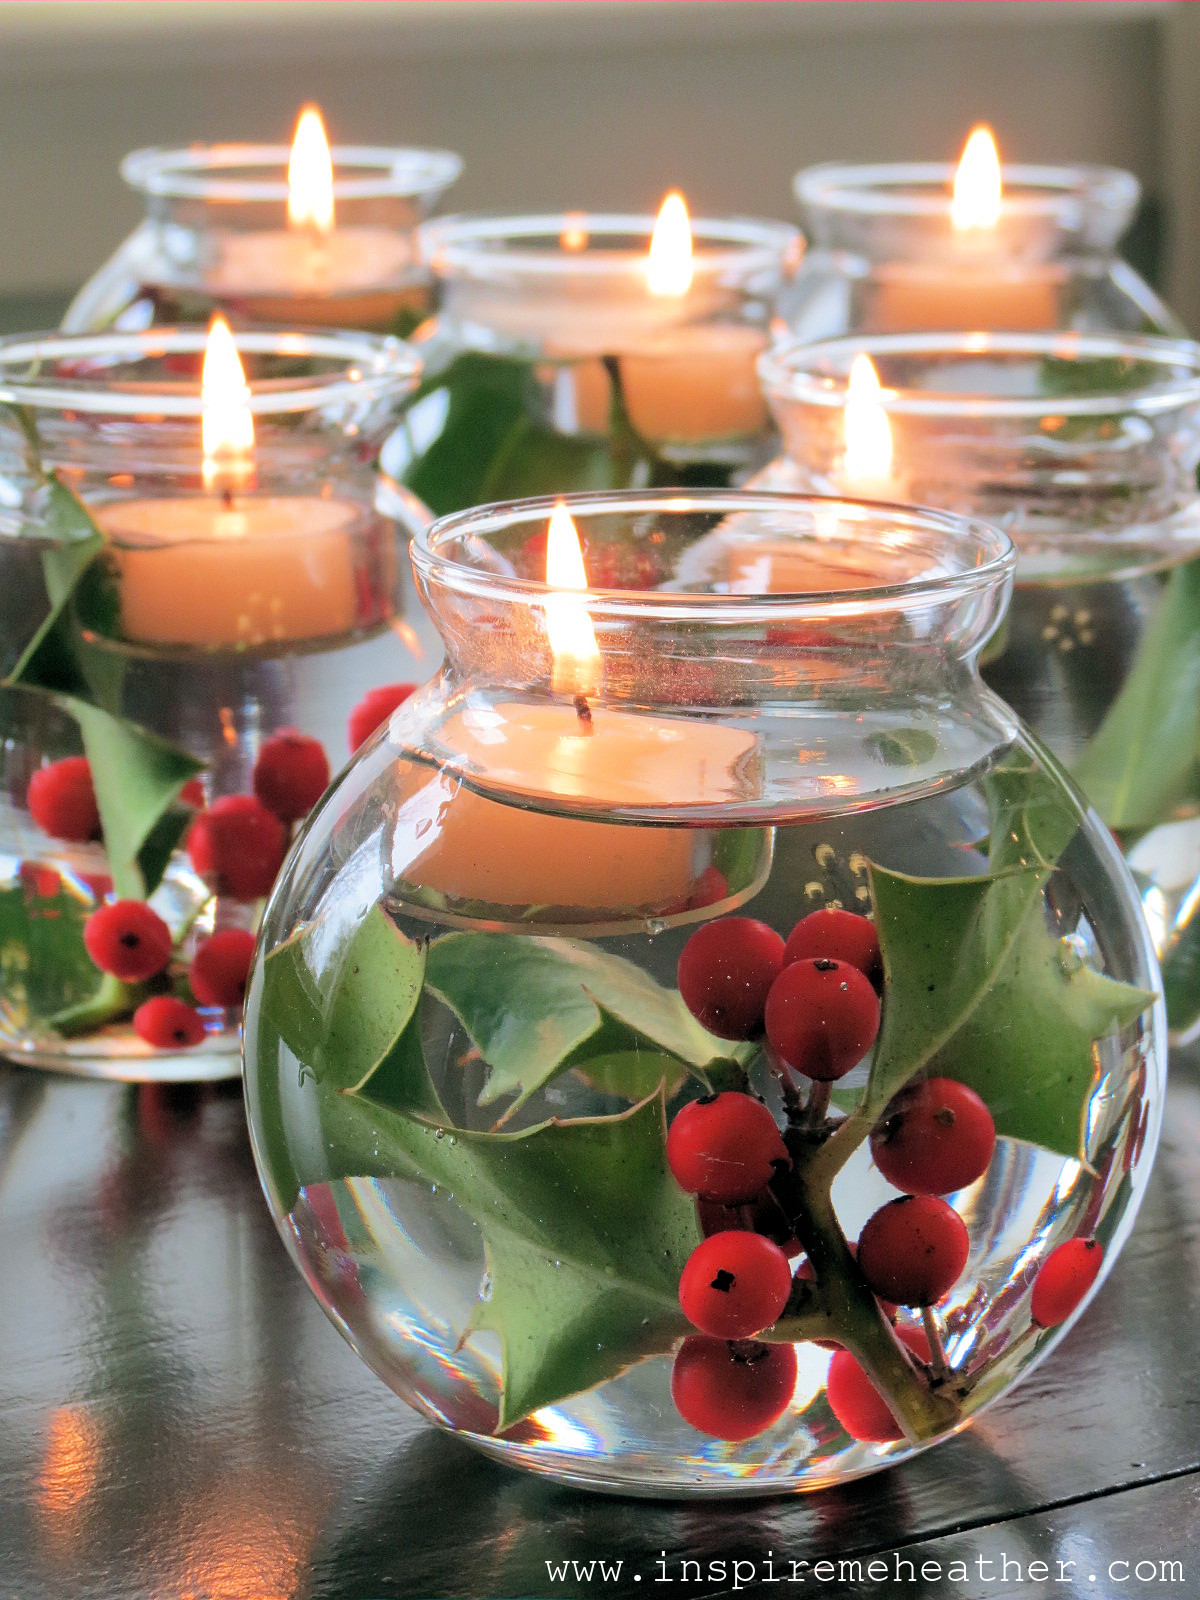 Best ideas about Christmas Centerpieces DIY . Save or Pin 17 Easy Last Minute DIY Christmas Decorations Style Now.